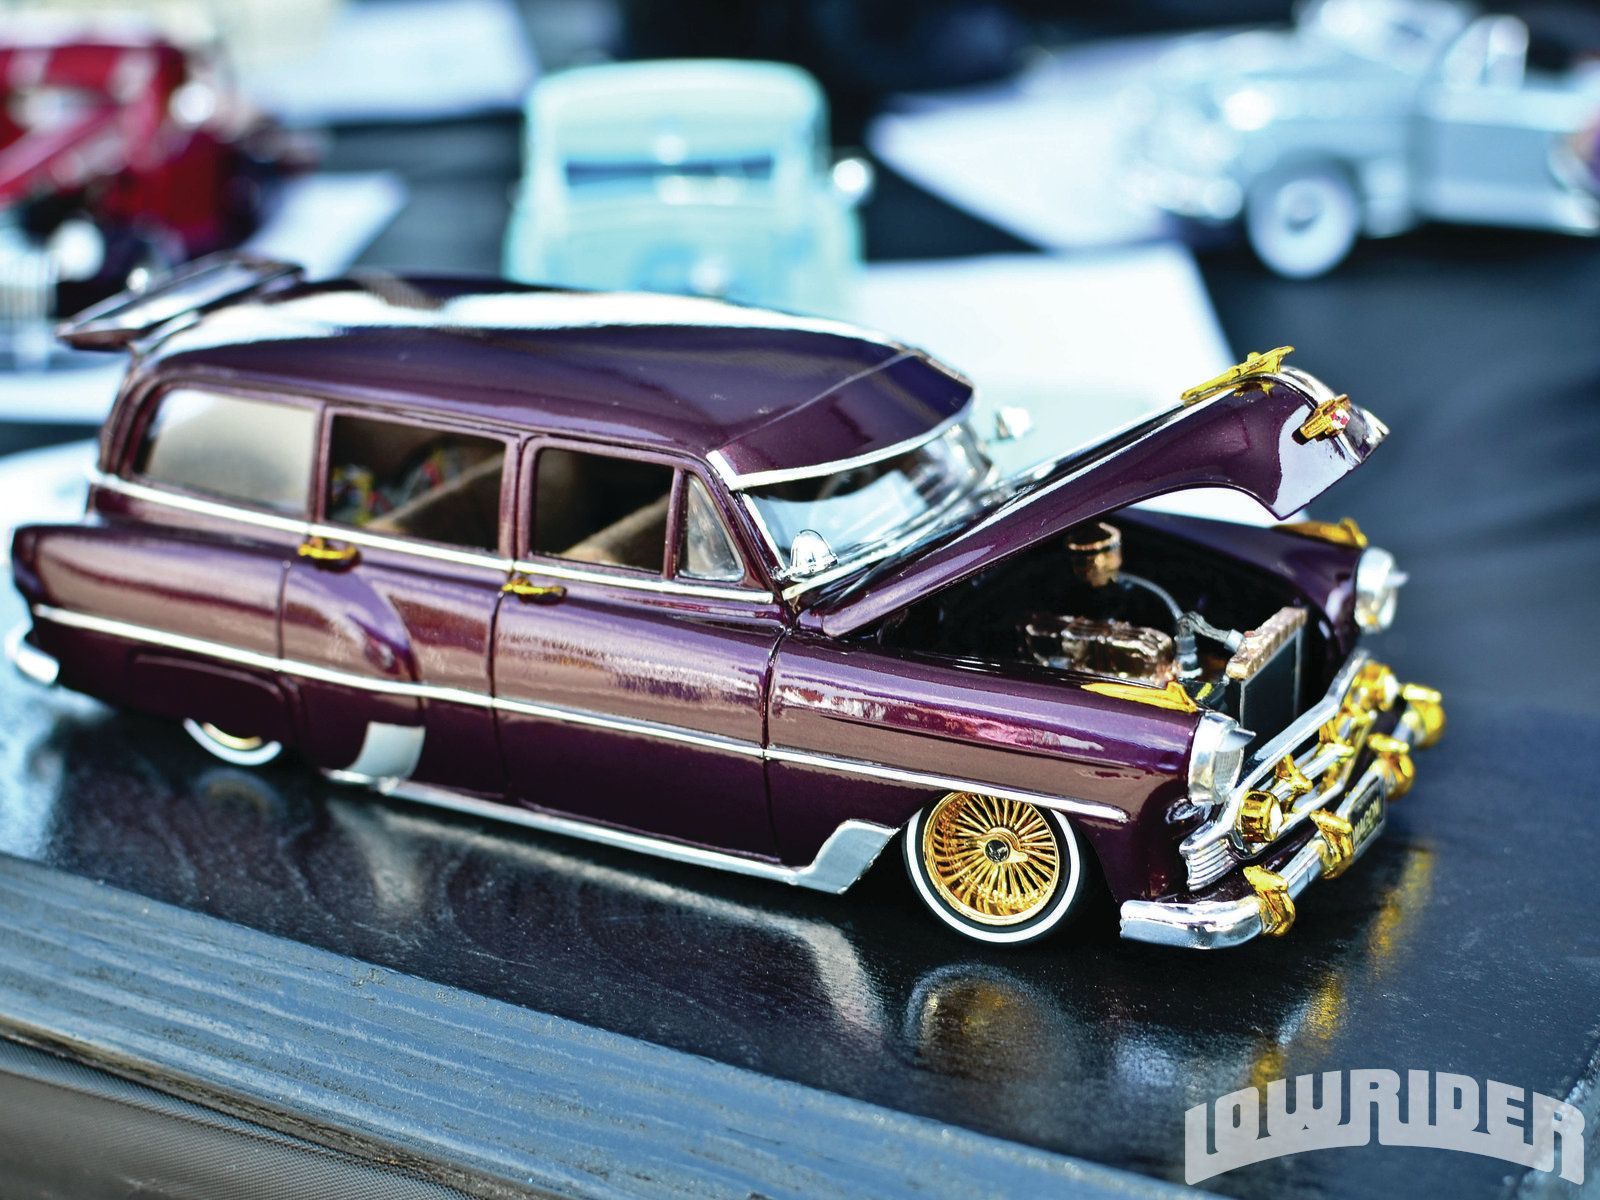 Chevy Wagon low rider | Die cast & model kit | Pinterest | Low ...